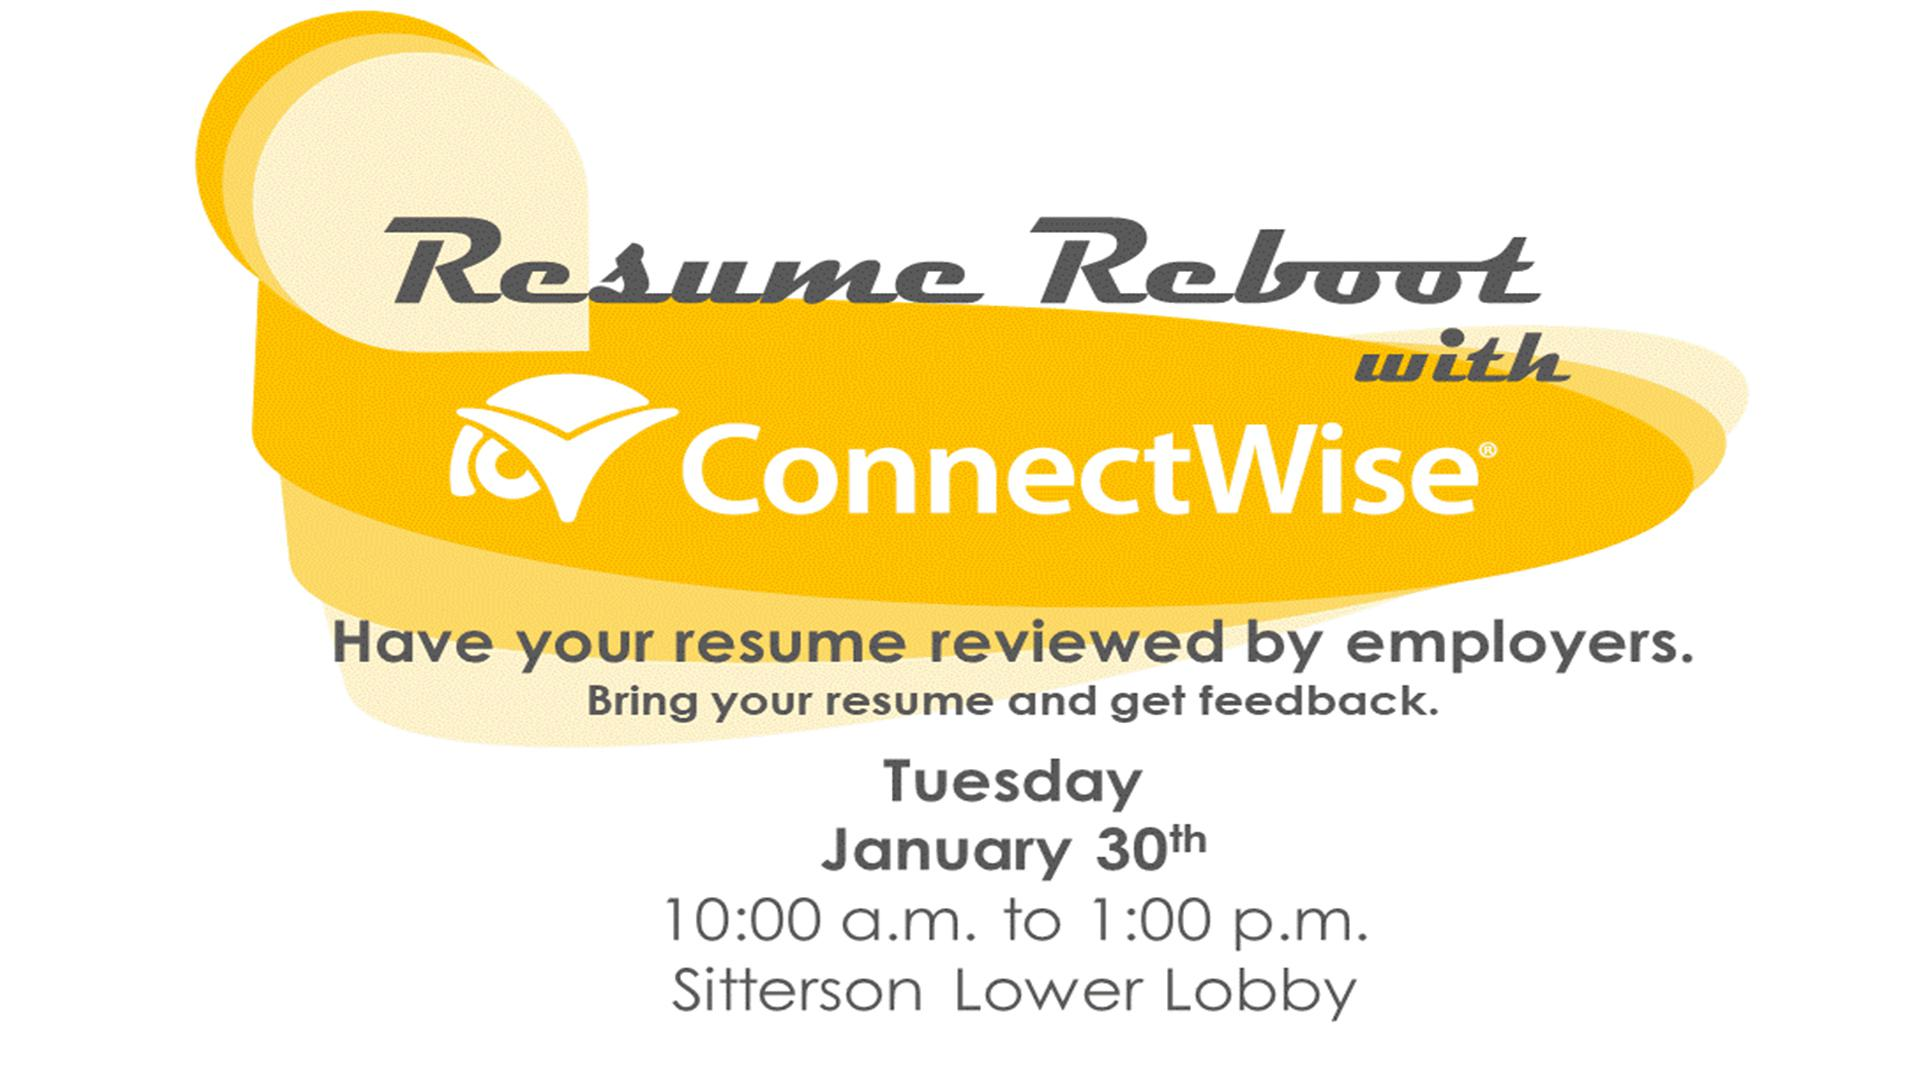 Resume Reboot with ConnectWise